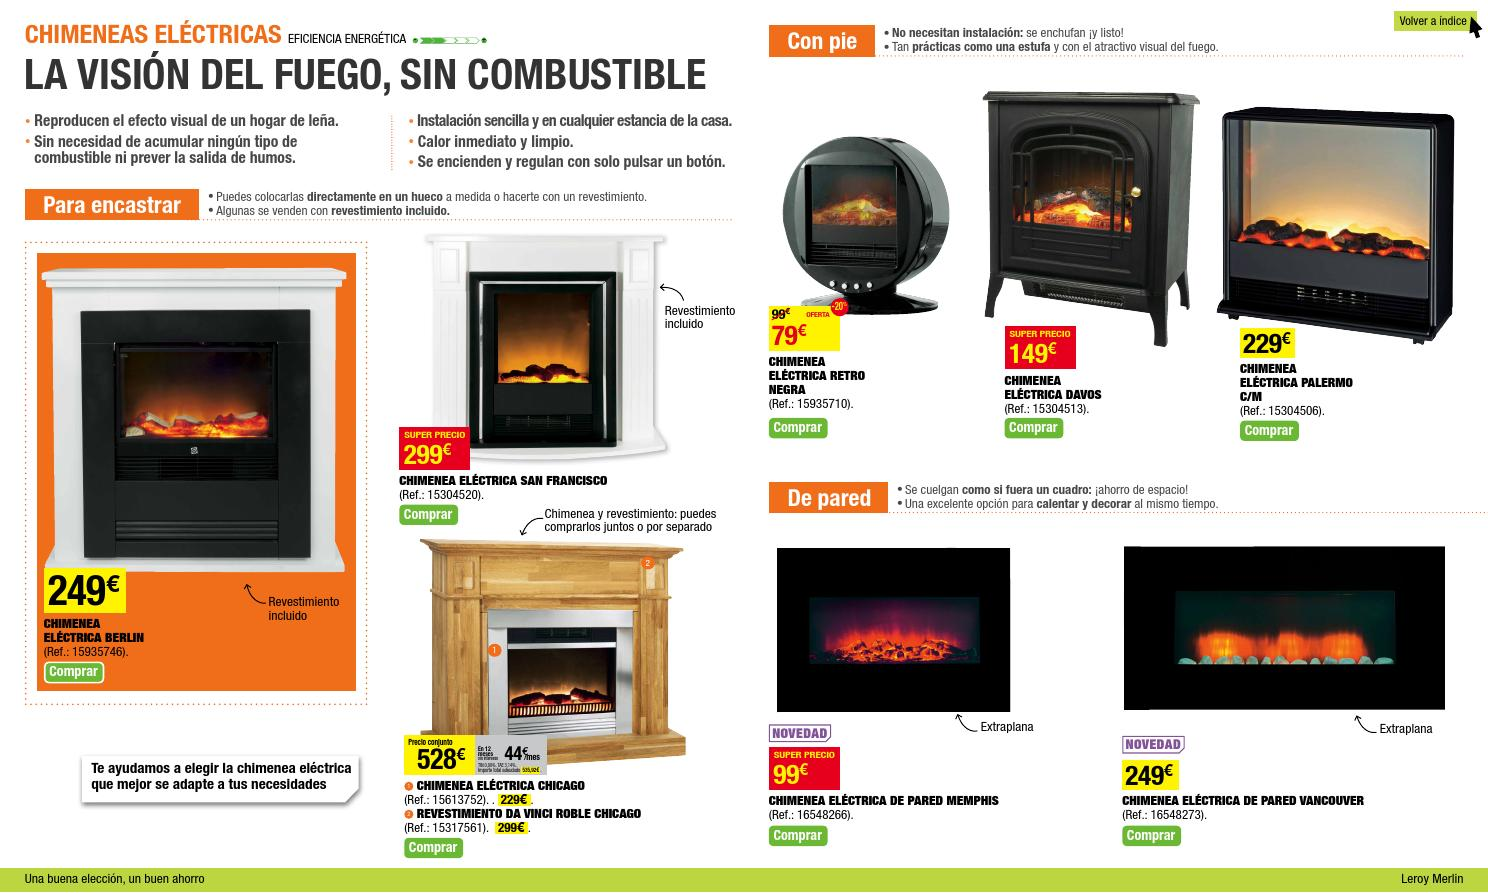 Calefaccion leroy merlin catalogo 2013 2014 by issuu - Chimeneas leroy merlin ...